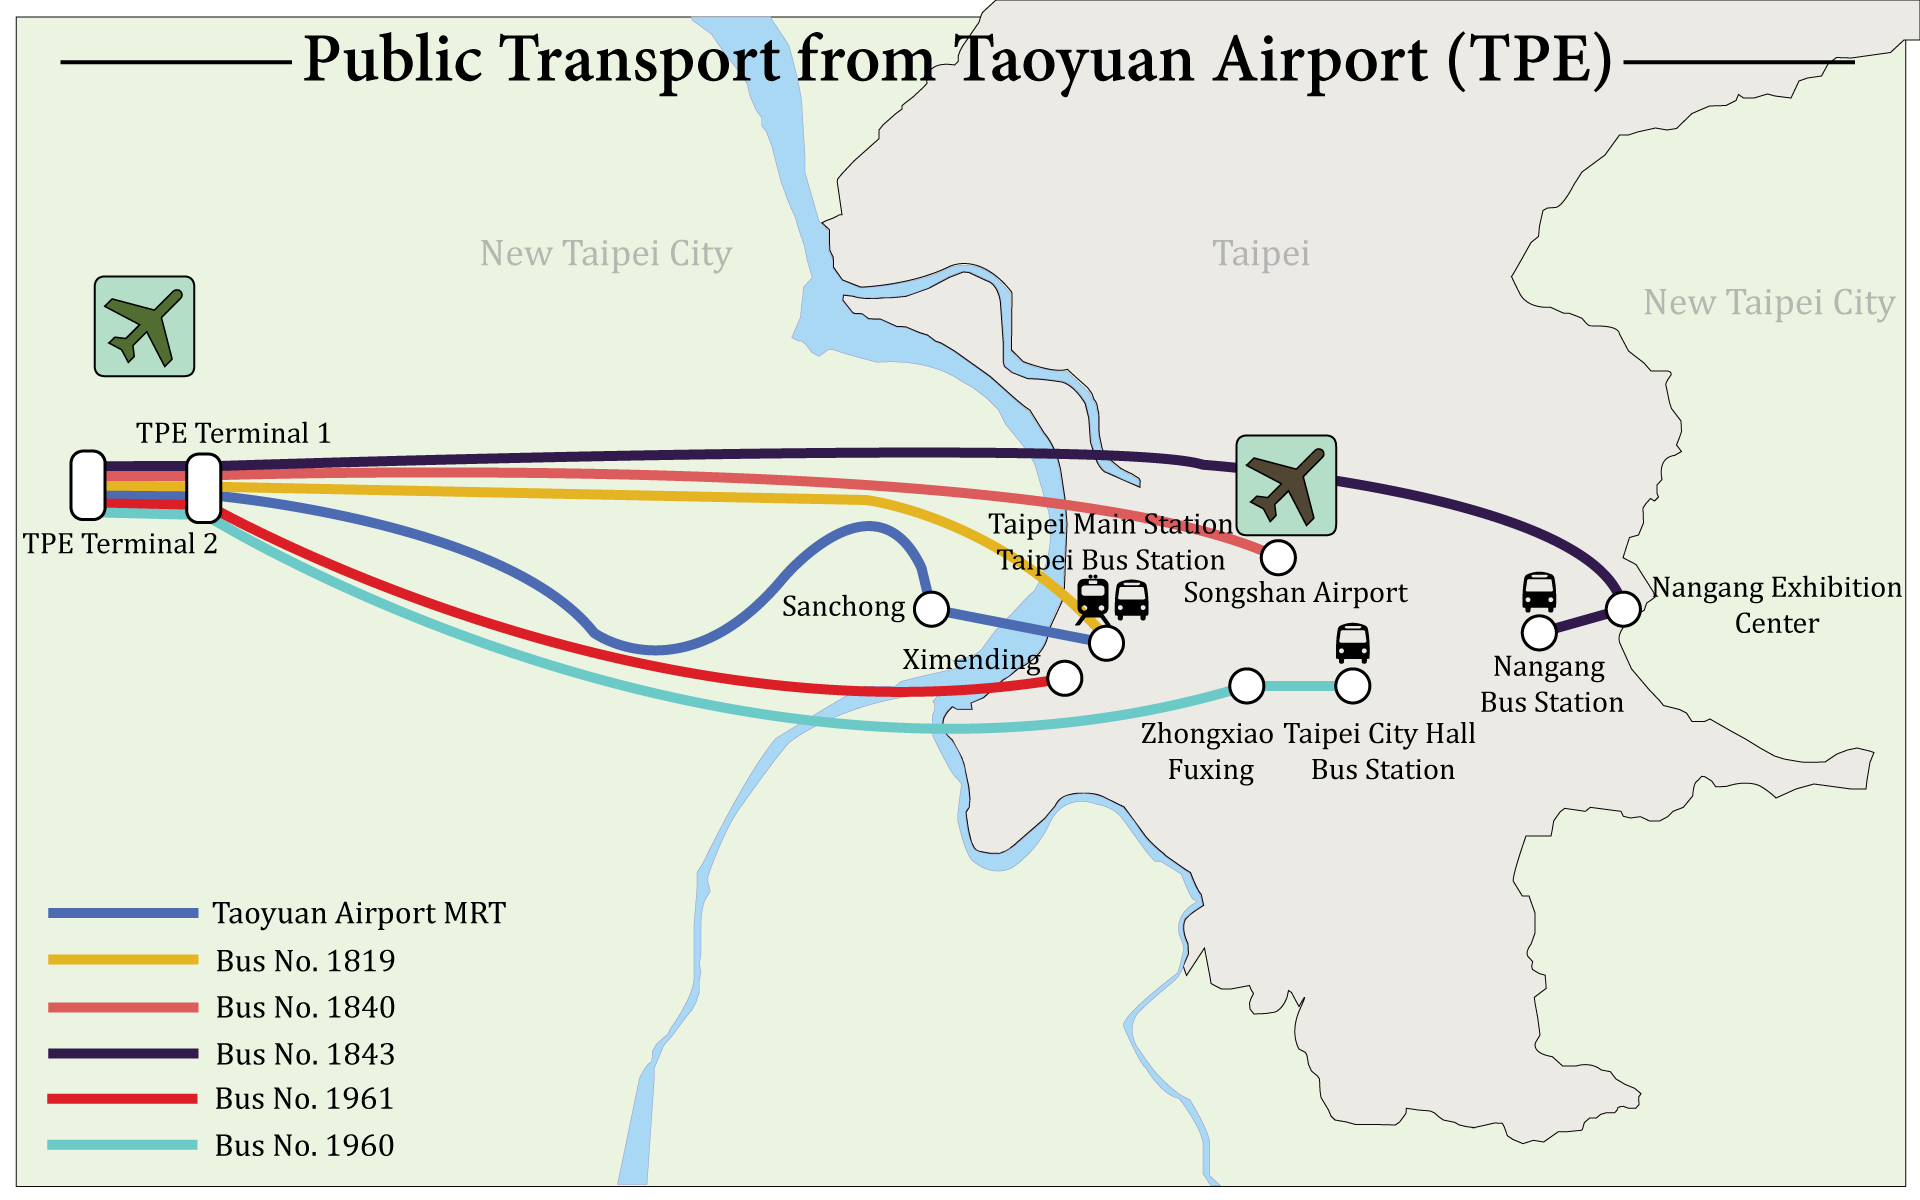 Taipei Airports to the City Center by Public Transport